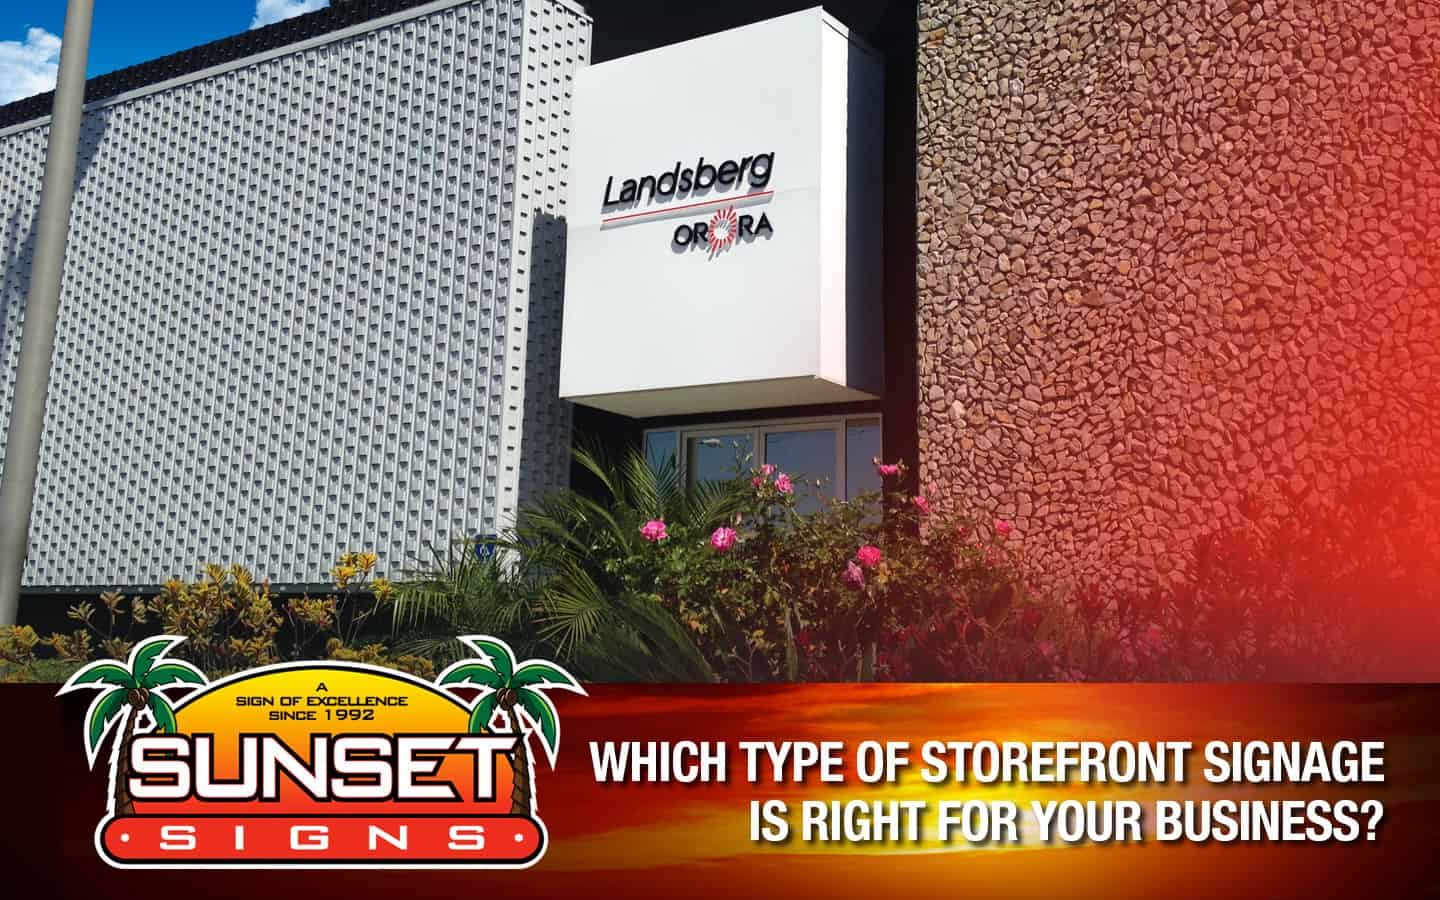 Which Type Of Storefront Signage Is Right For Your Business